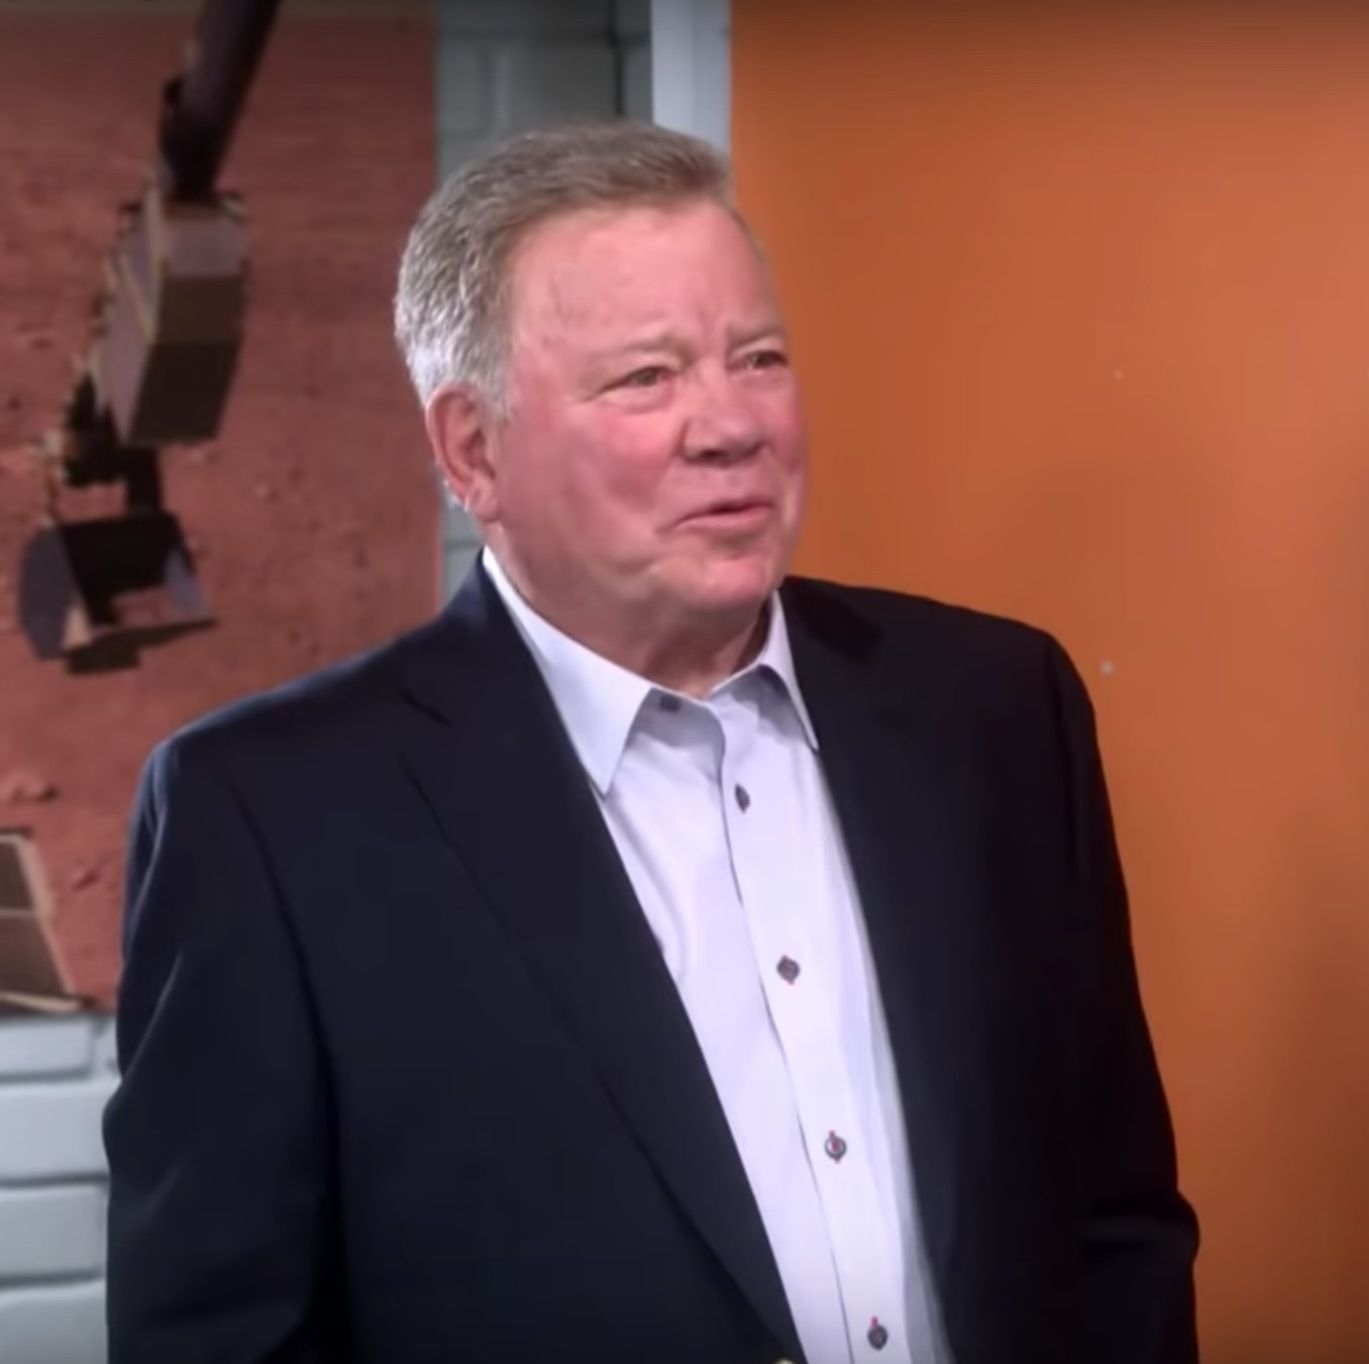 The Big Bang Theory shares first look at Star Trek legend William Shatner's cameo